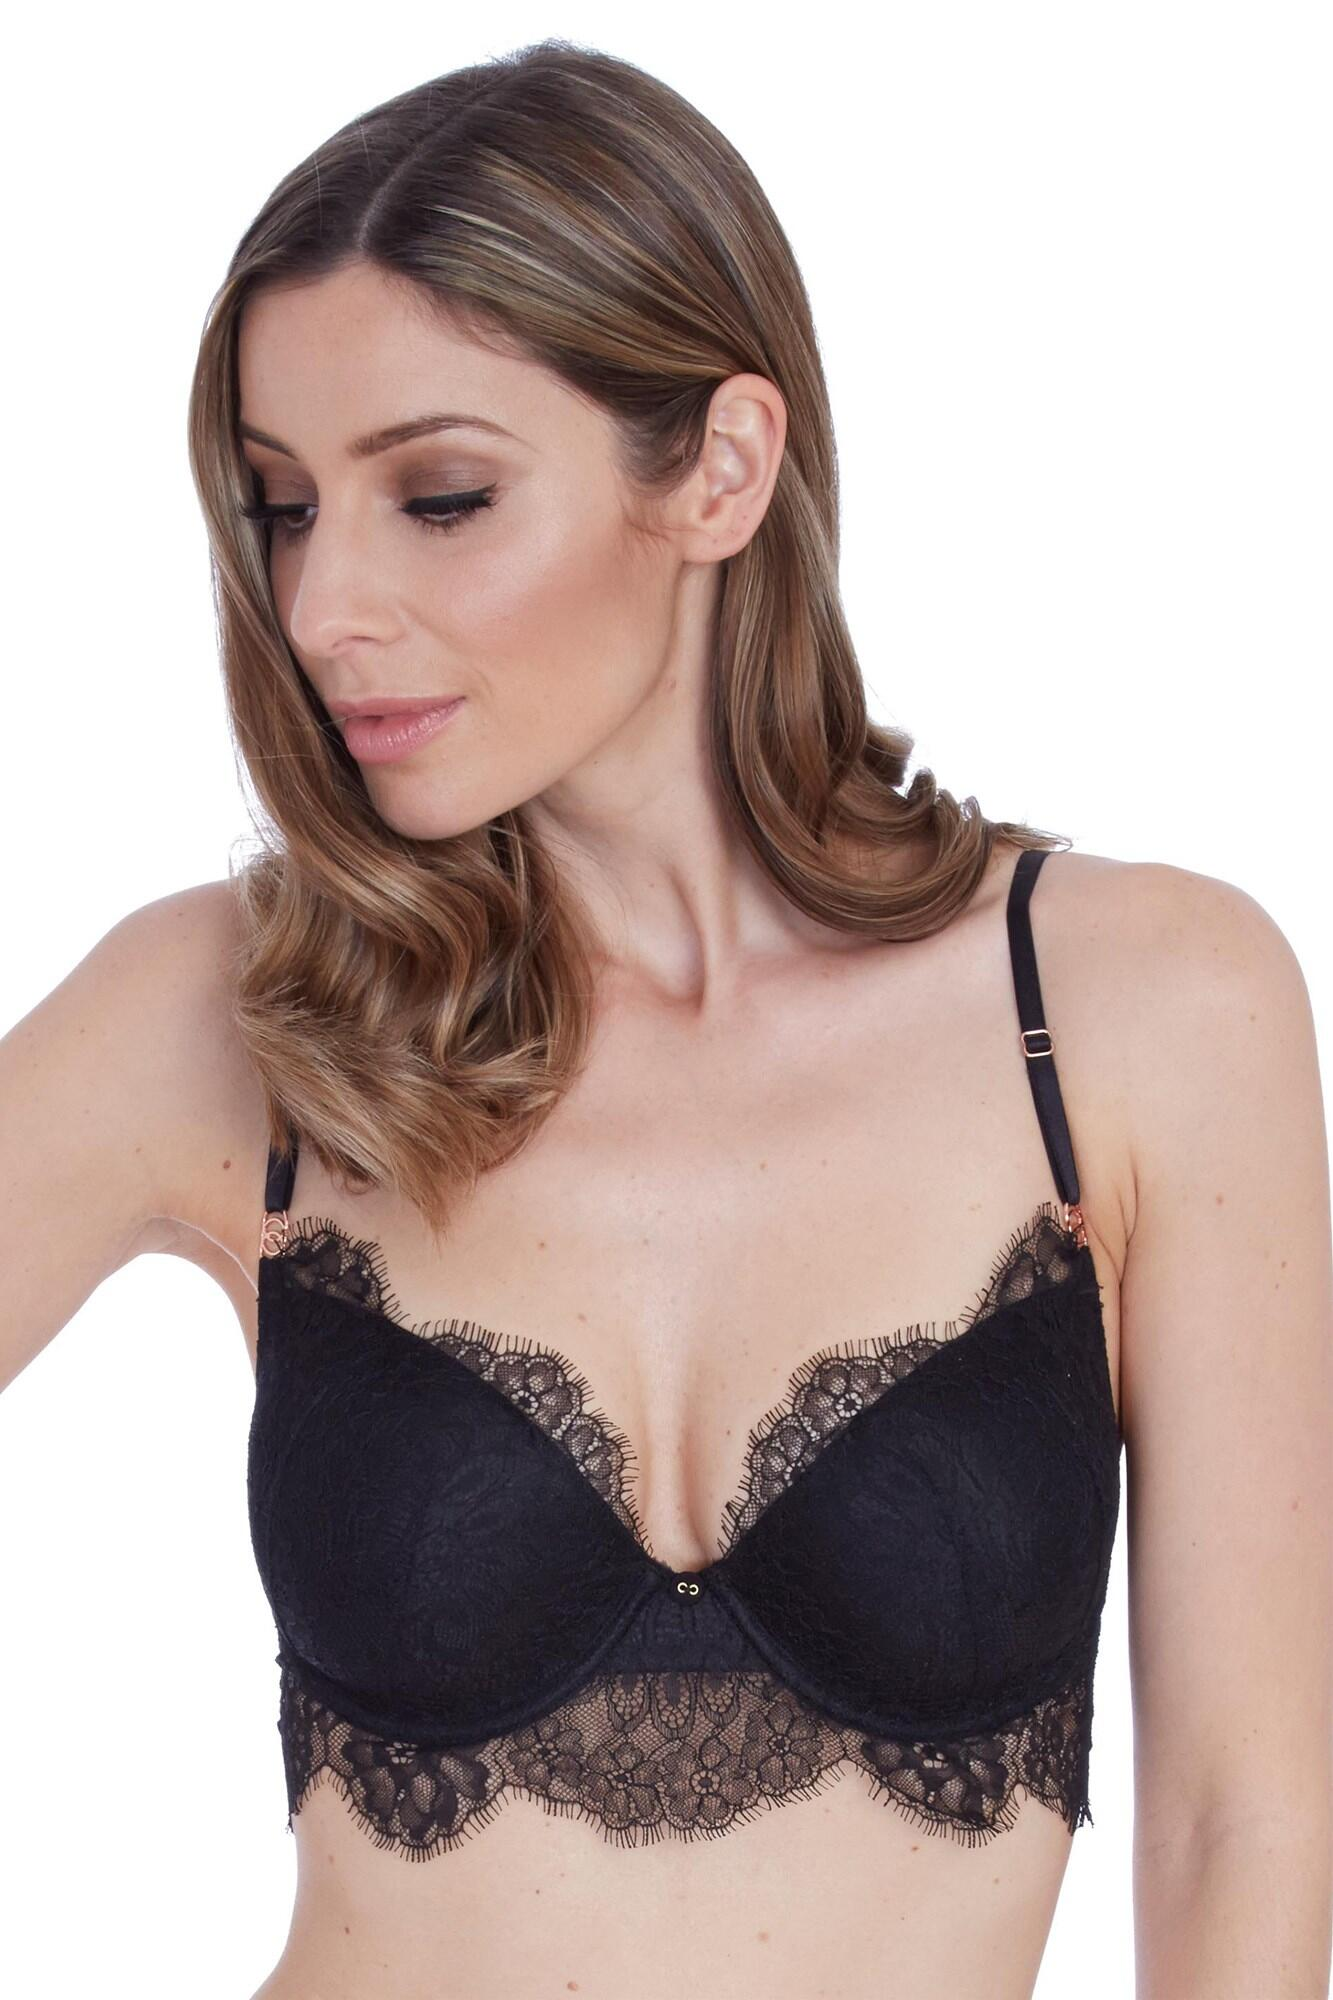 Alex Padded Plunge Bra - Black